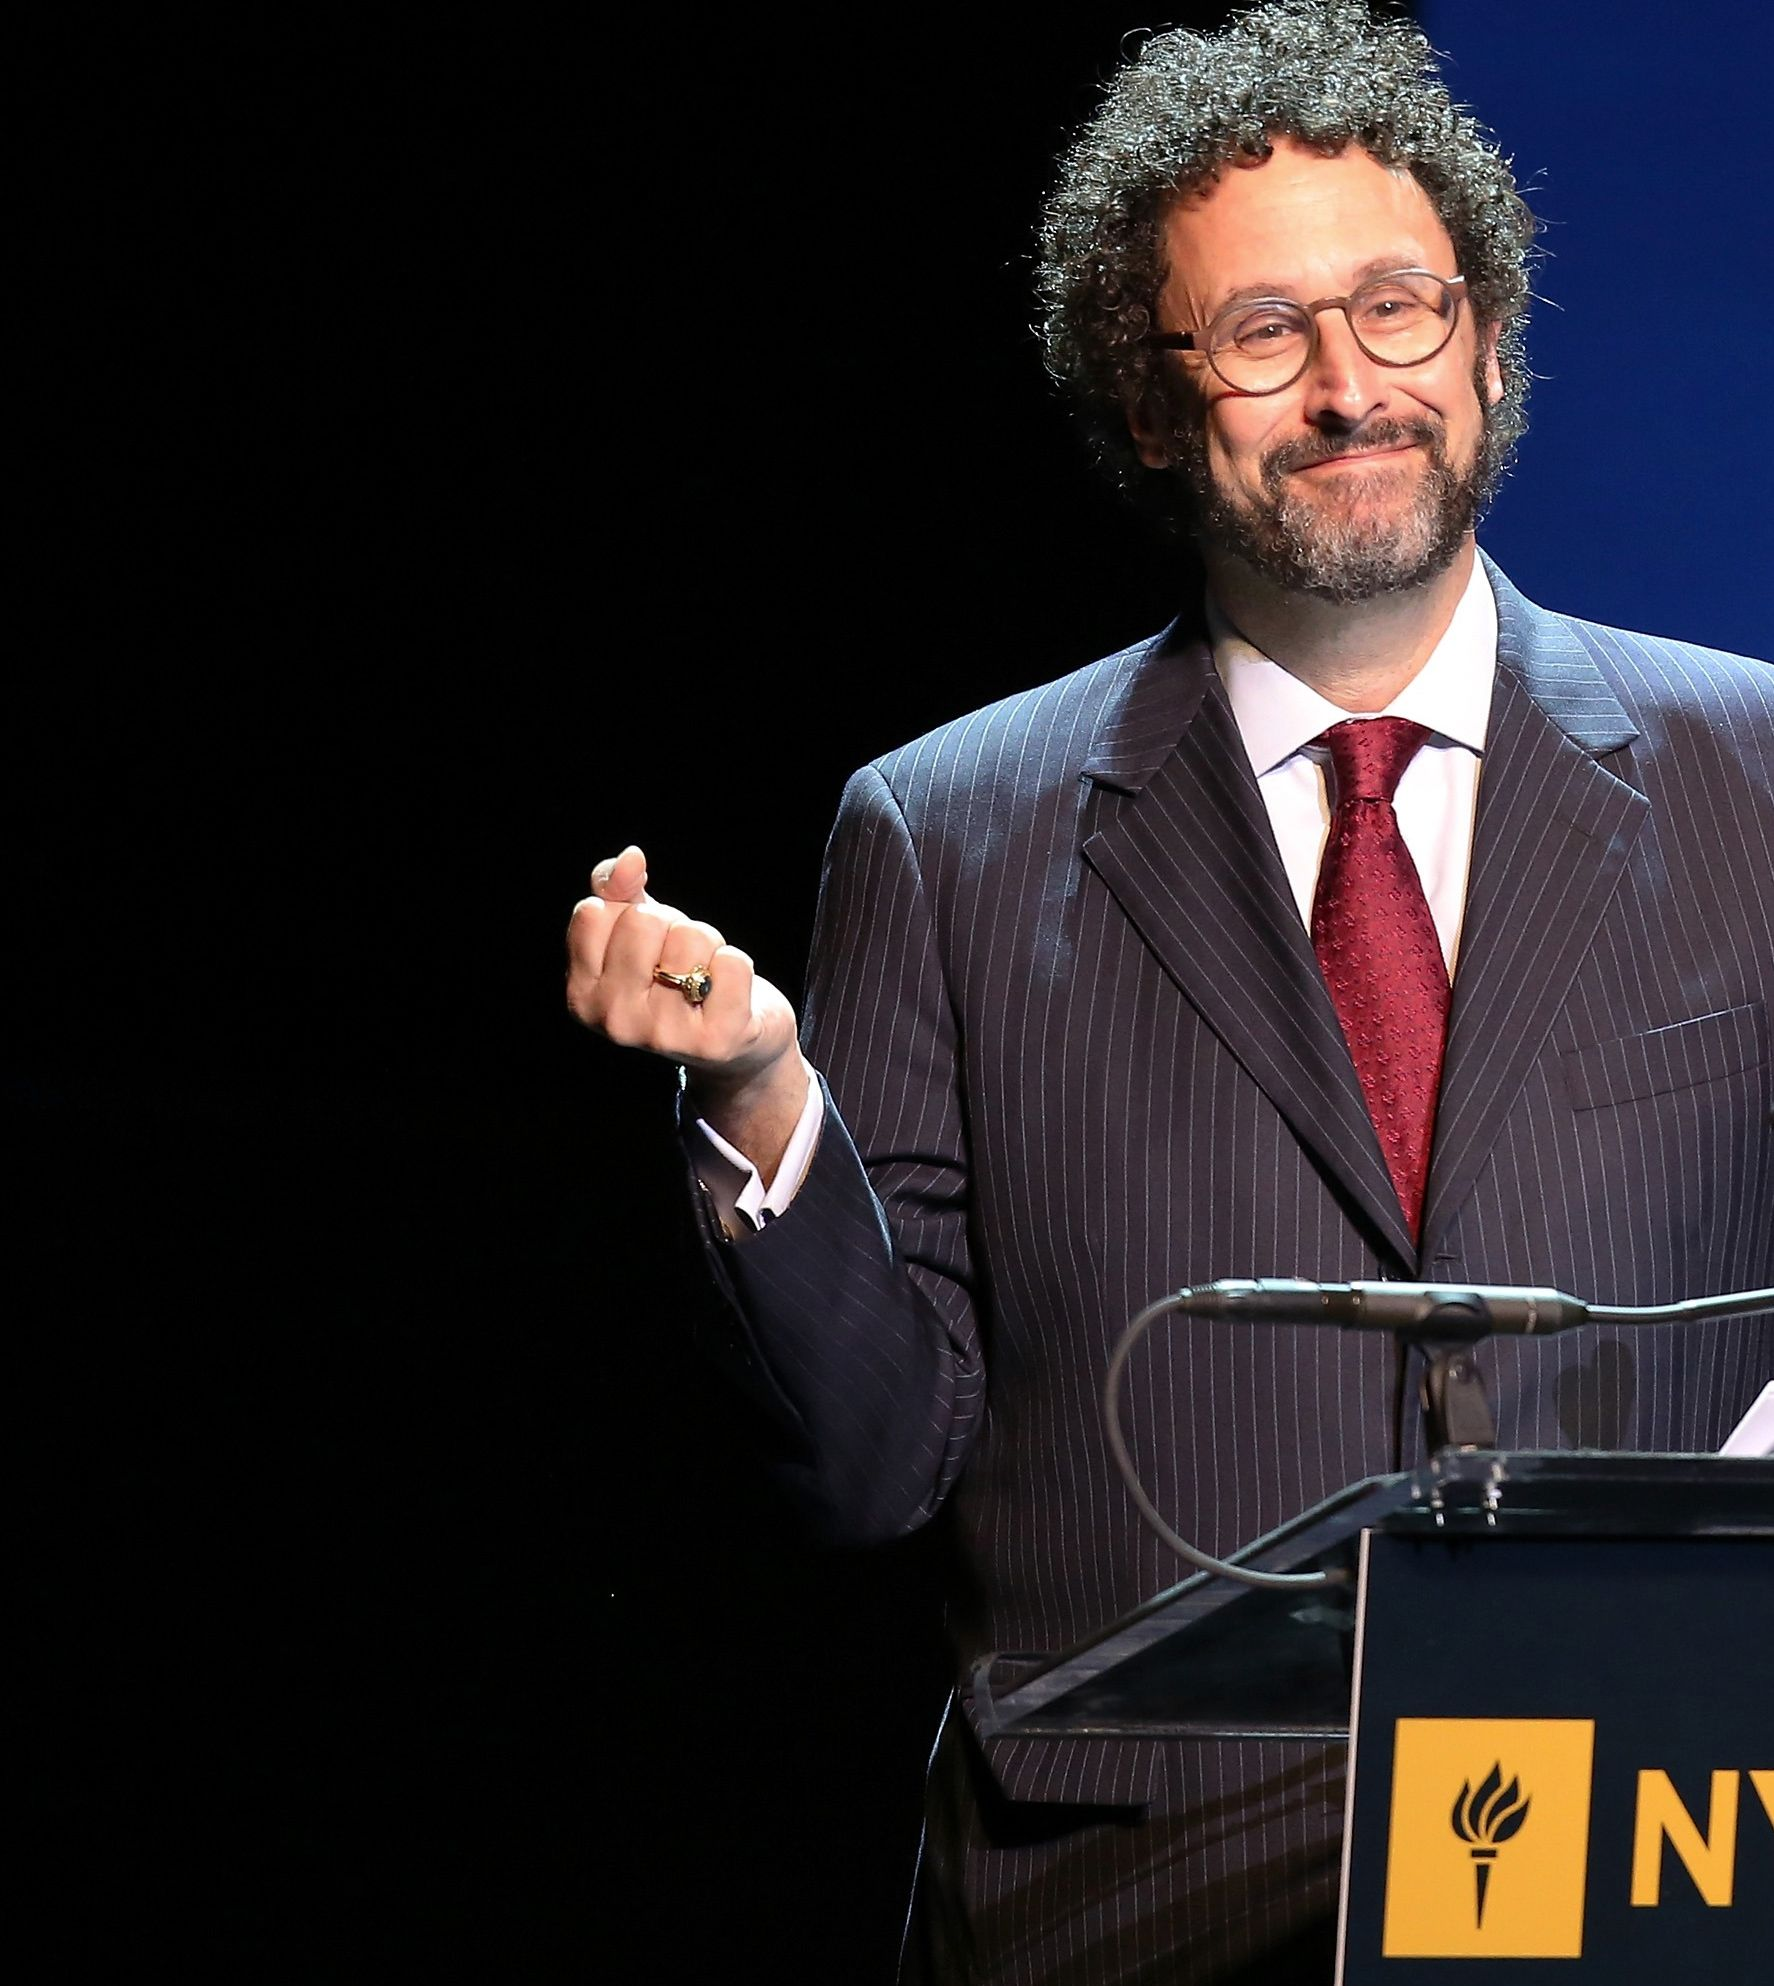 Tony Kushner to write play about 'borderline psychotic' Trump